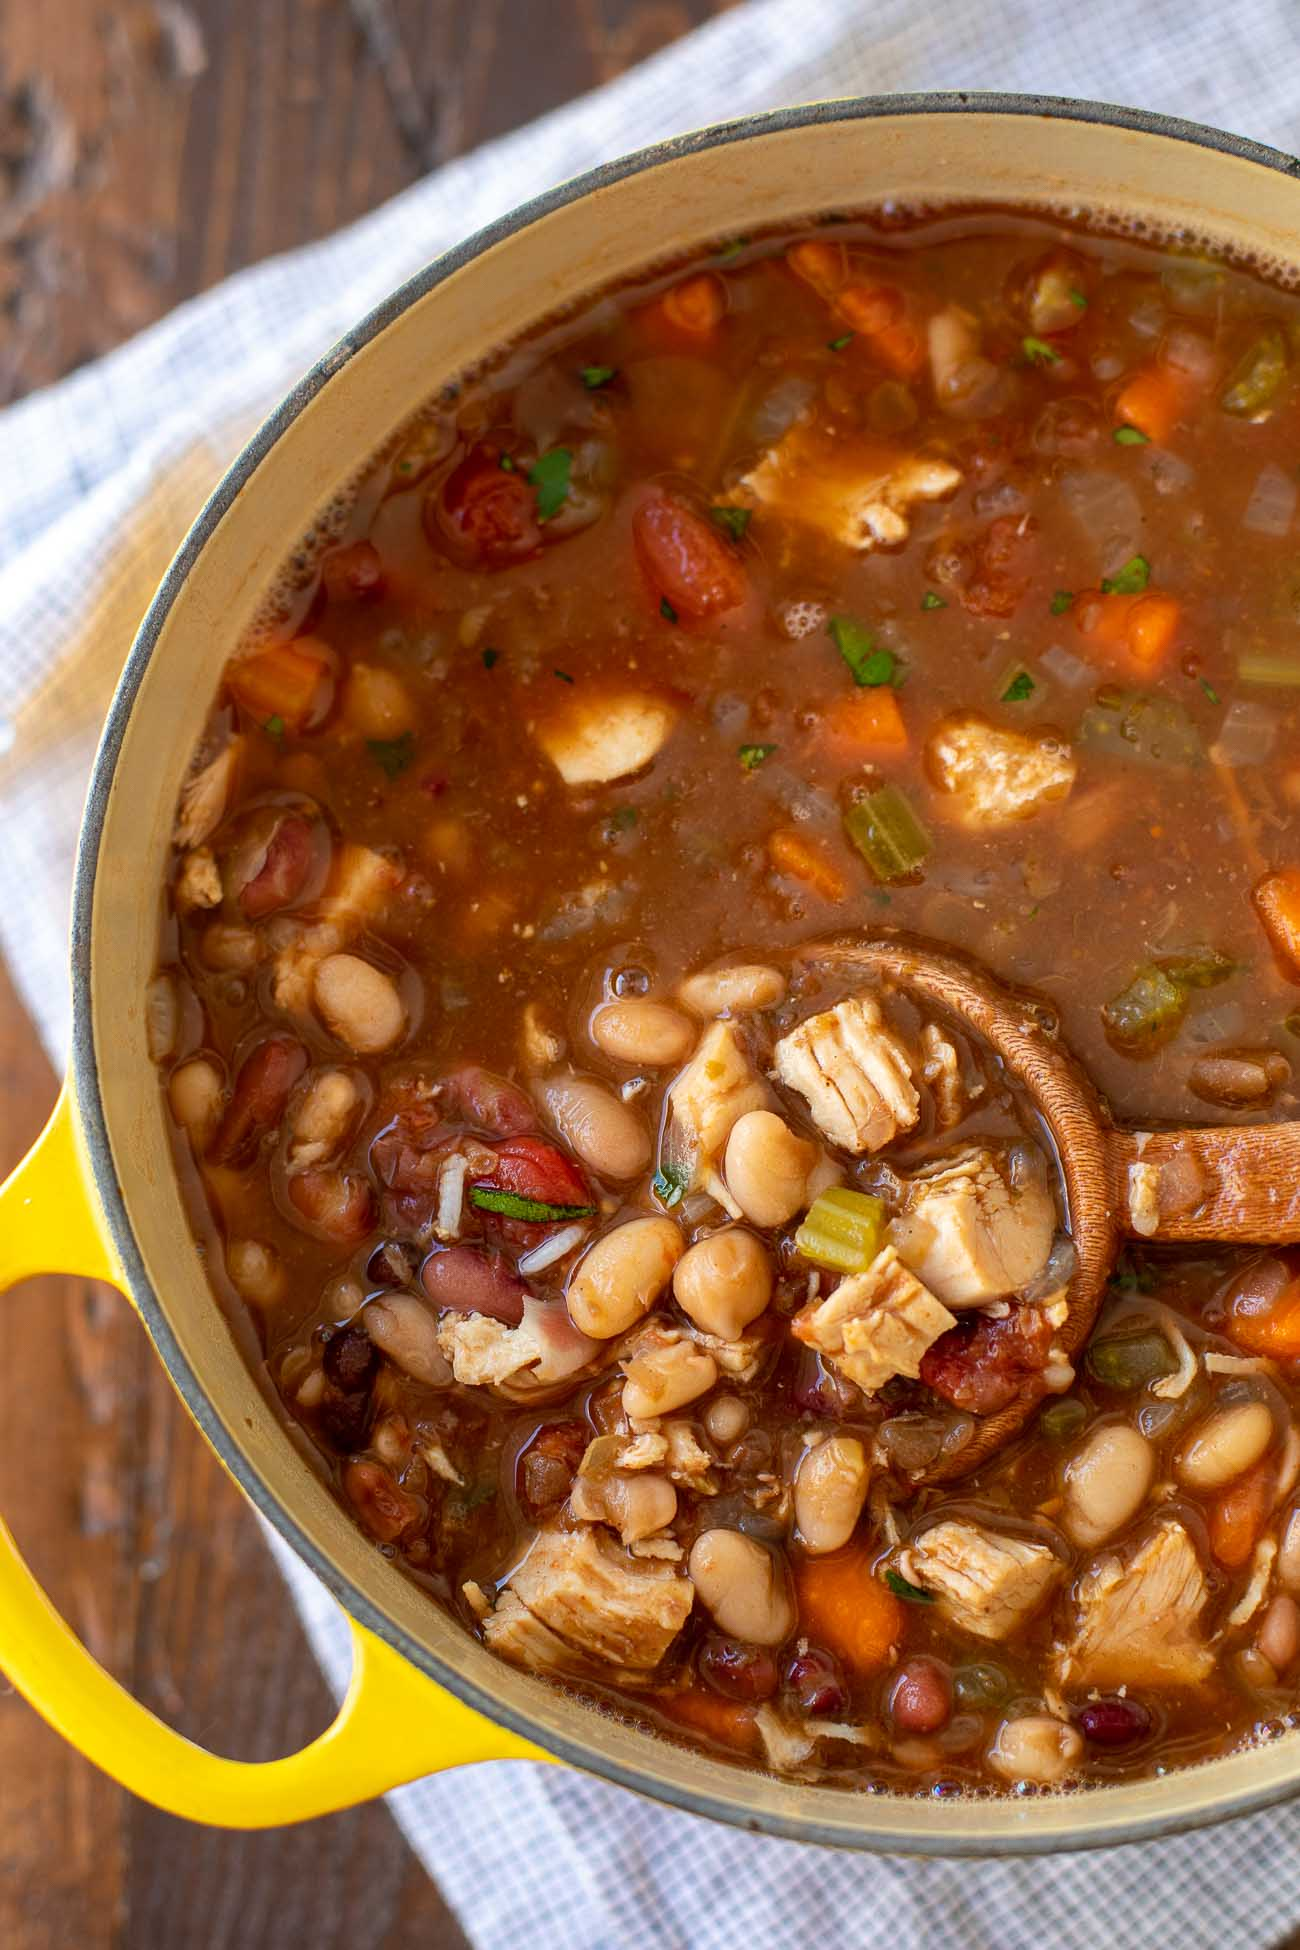 Cajun 15 Bean Soup with Leftover Turkey Recipe - you're going to love this warm and comforting bean soup with turkey recipe! #soup #beans #turkey